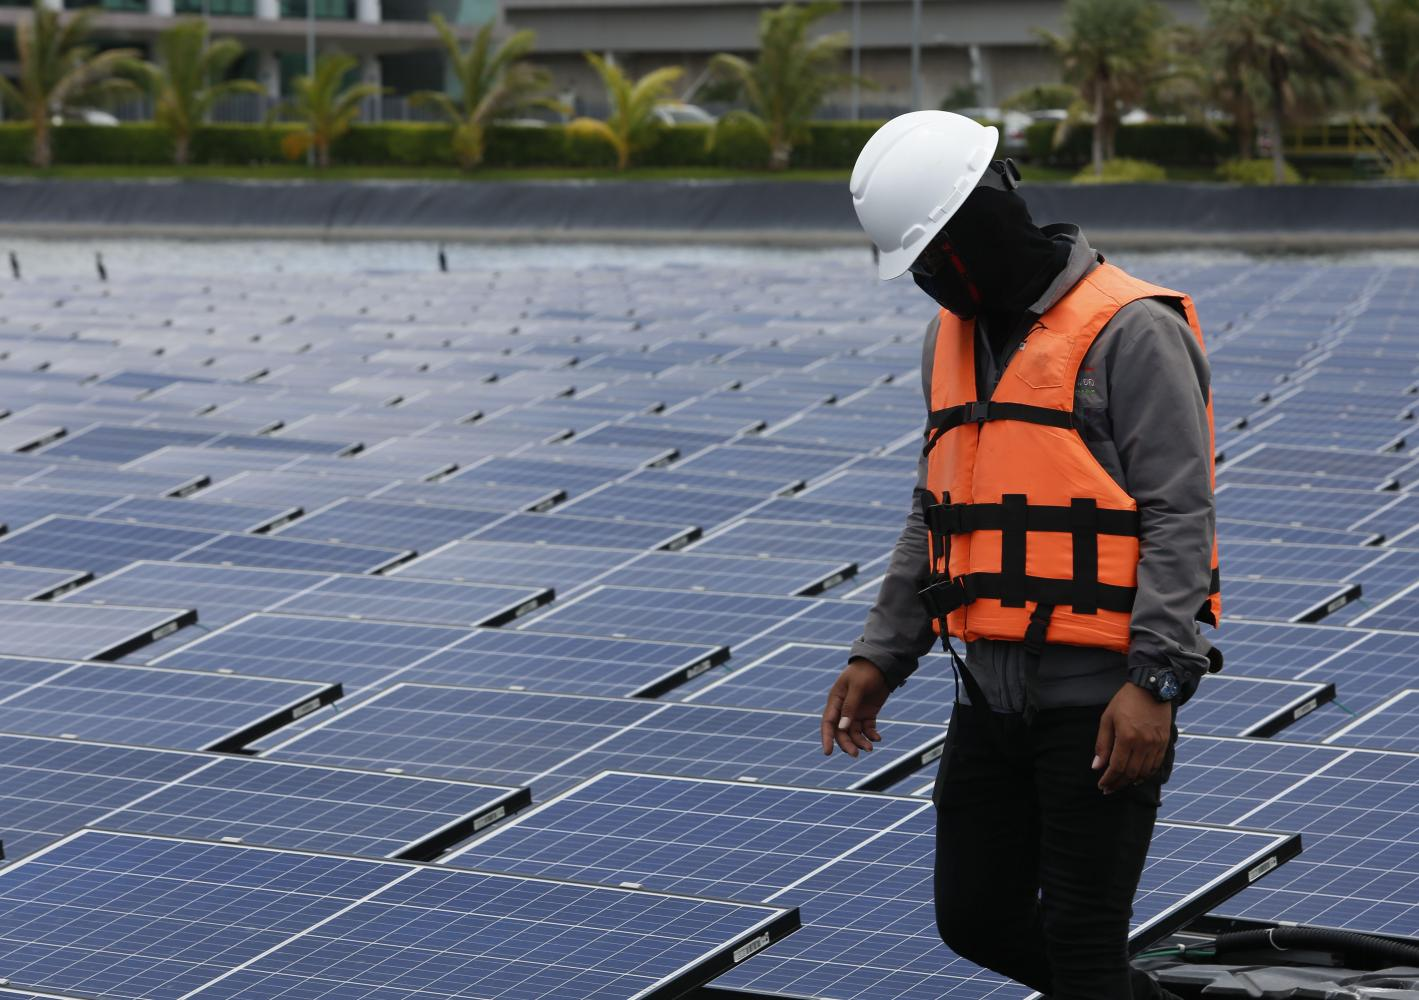 A man works at a solar power project in Rayong. The use of lithium-ion batteries in the whole energy supply chain in Thailand is still limited. (Photo by Pattarapong Chapattarasill)